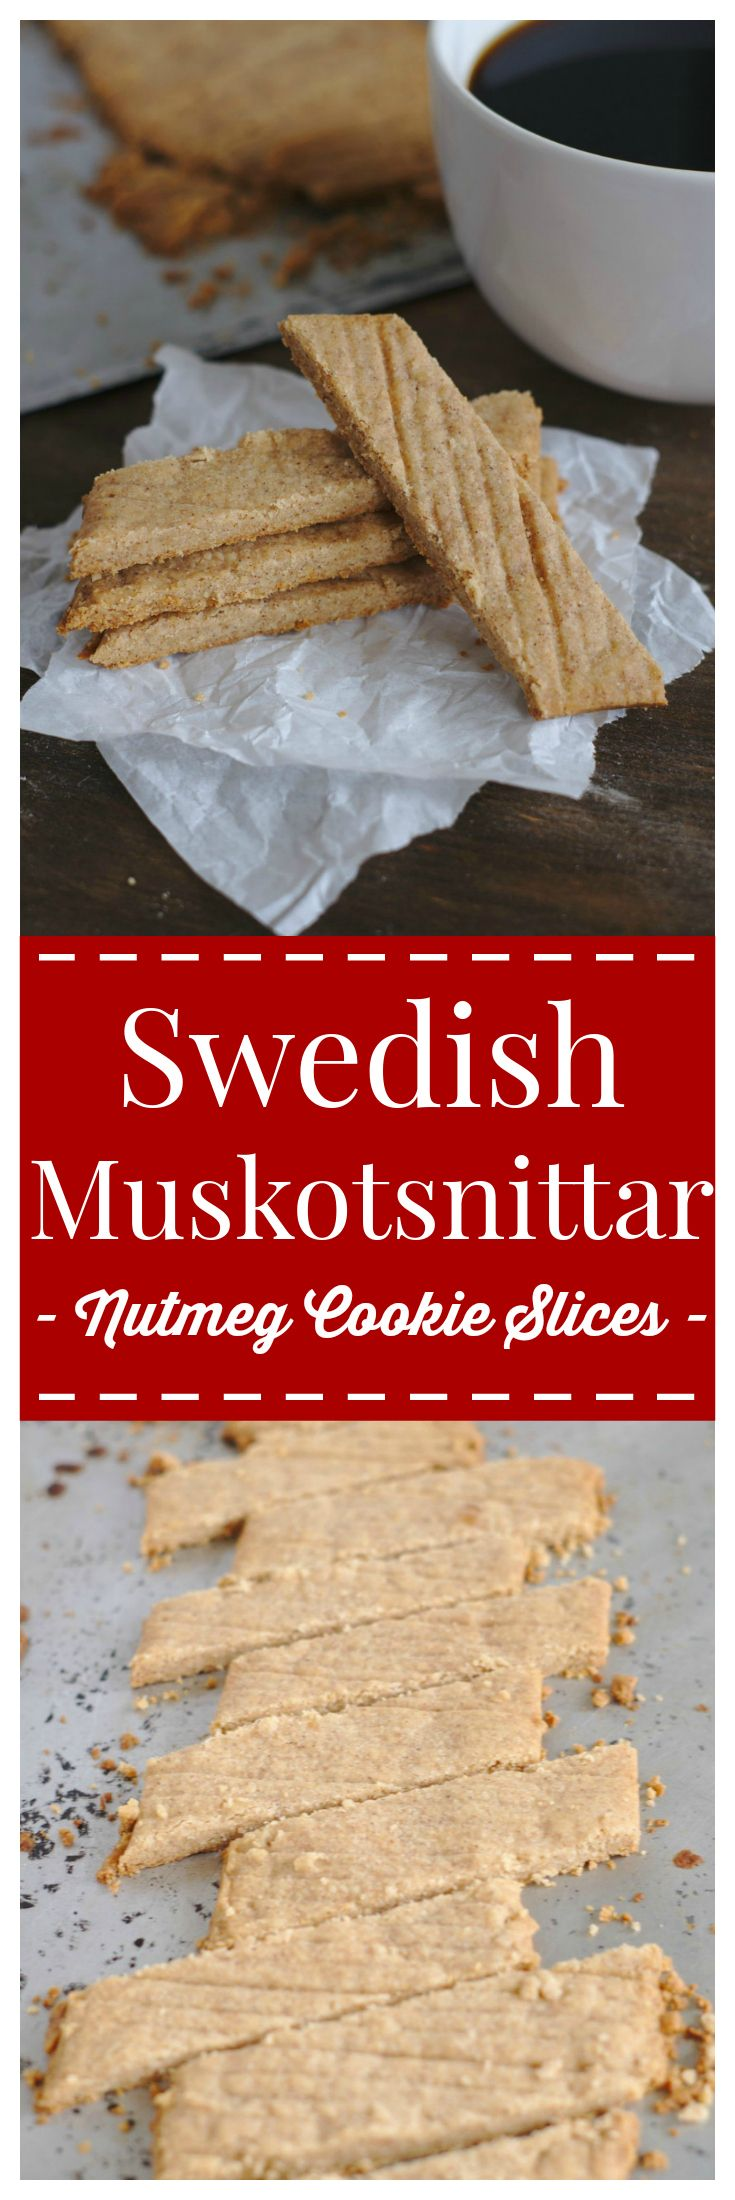 Swedish Muskotsnittar – A Swedish crispy butter spice cookie made with just 6 ingredients. Perfect for the holidays with a cup of coffee or for a Christmas cookie exchange! #christmas #swedish #dessert #cookie #nutmeg